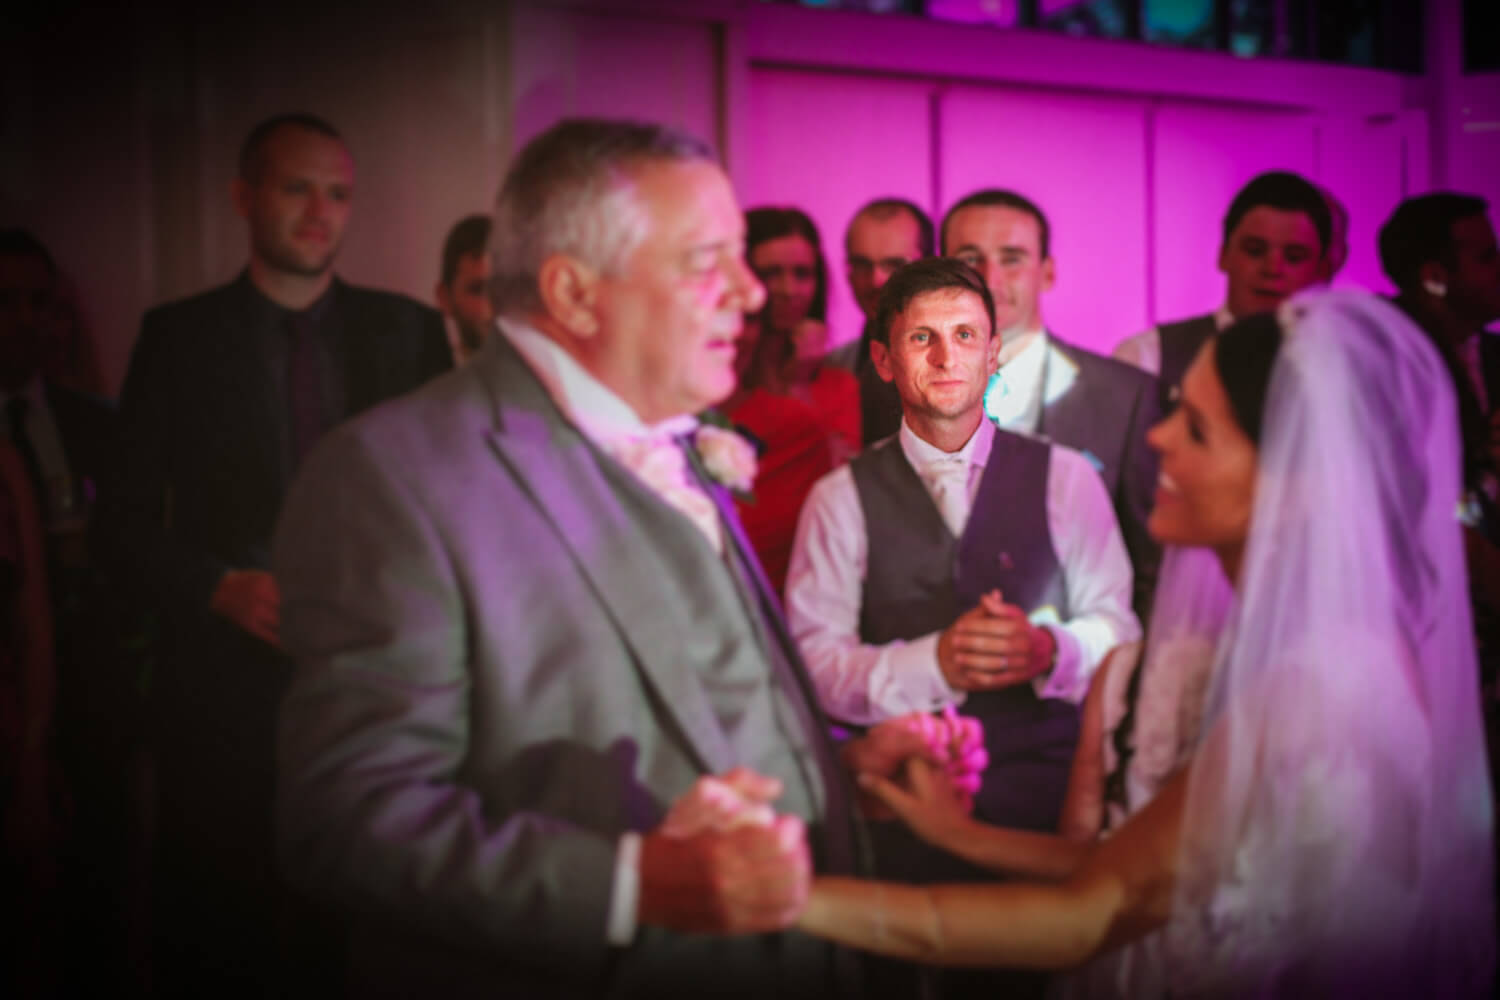 Colourful photo of groom watching bride dance with father